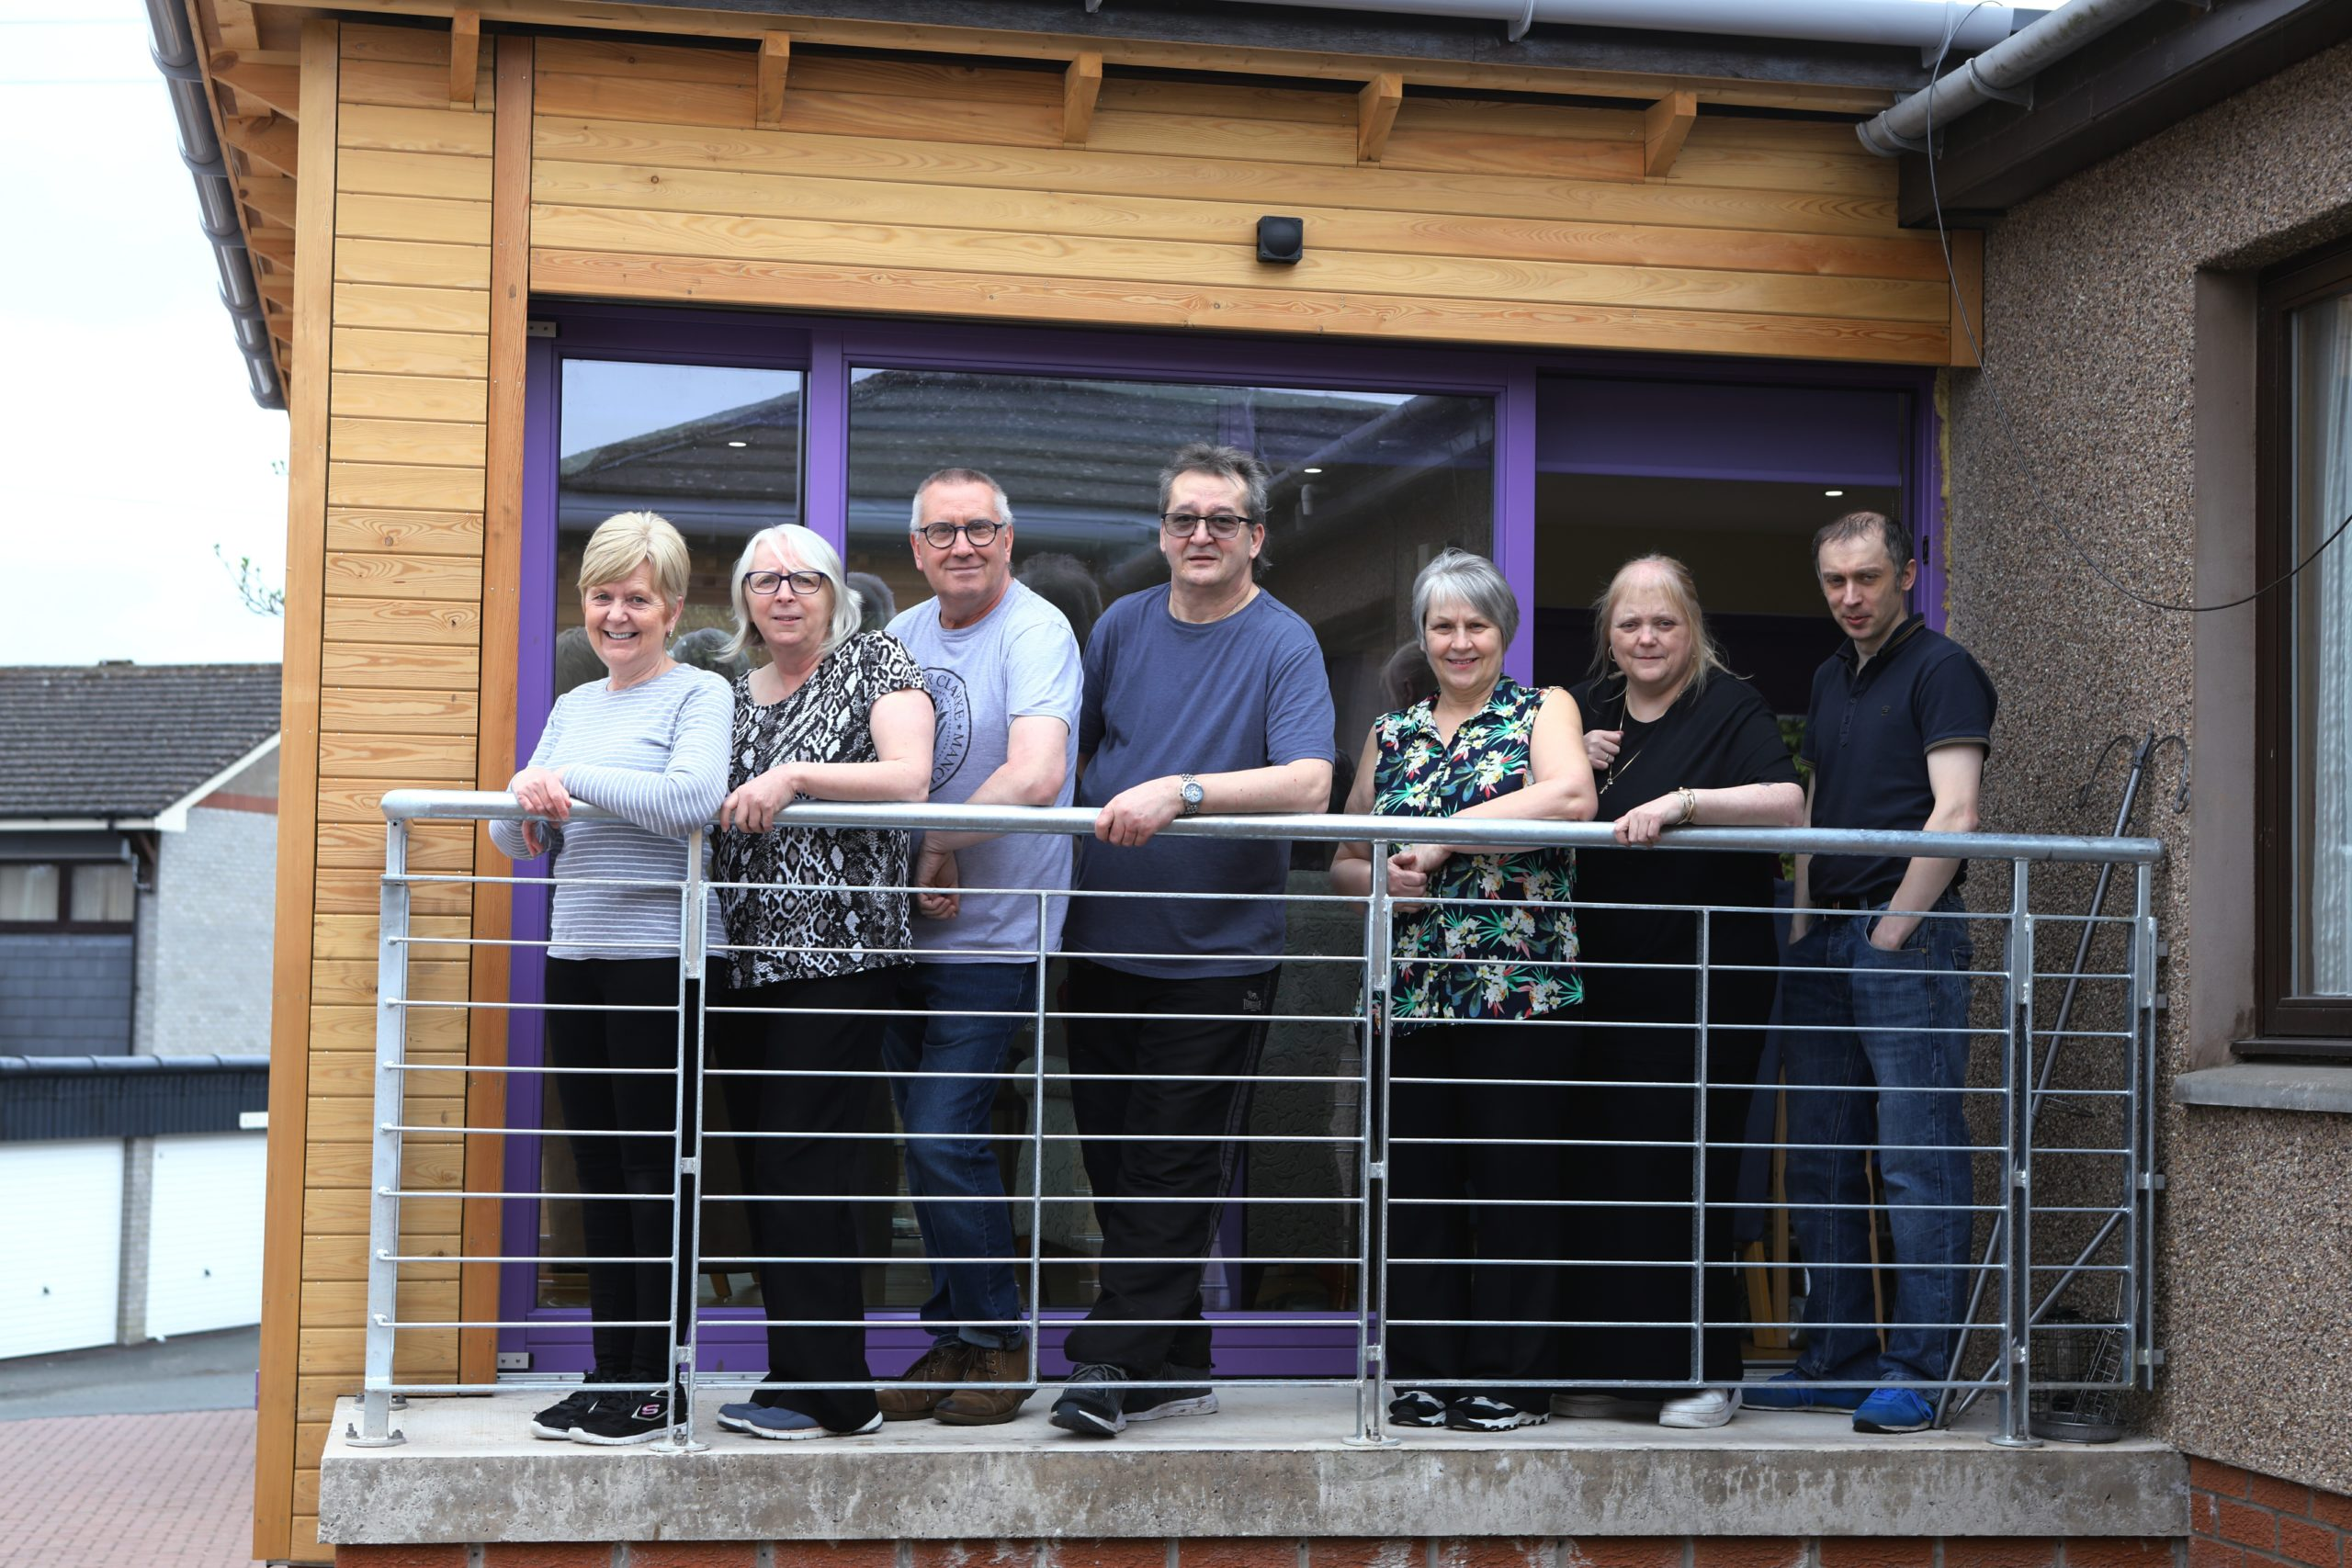 Staff with 3rd from left Ivan Cornford, Owner of St. Davids Home in Forfar